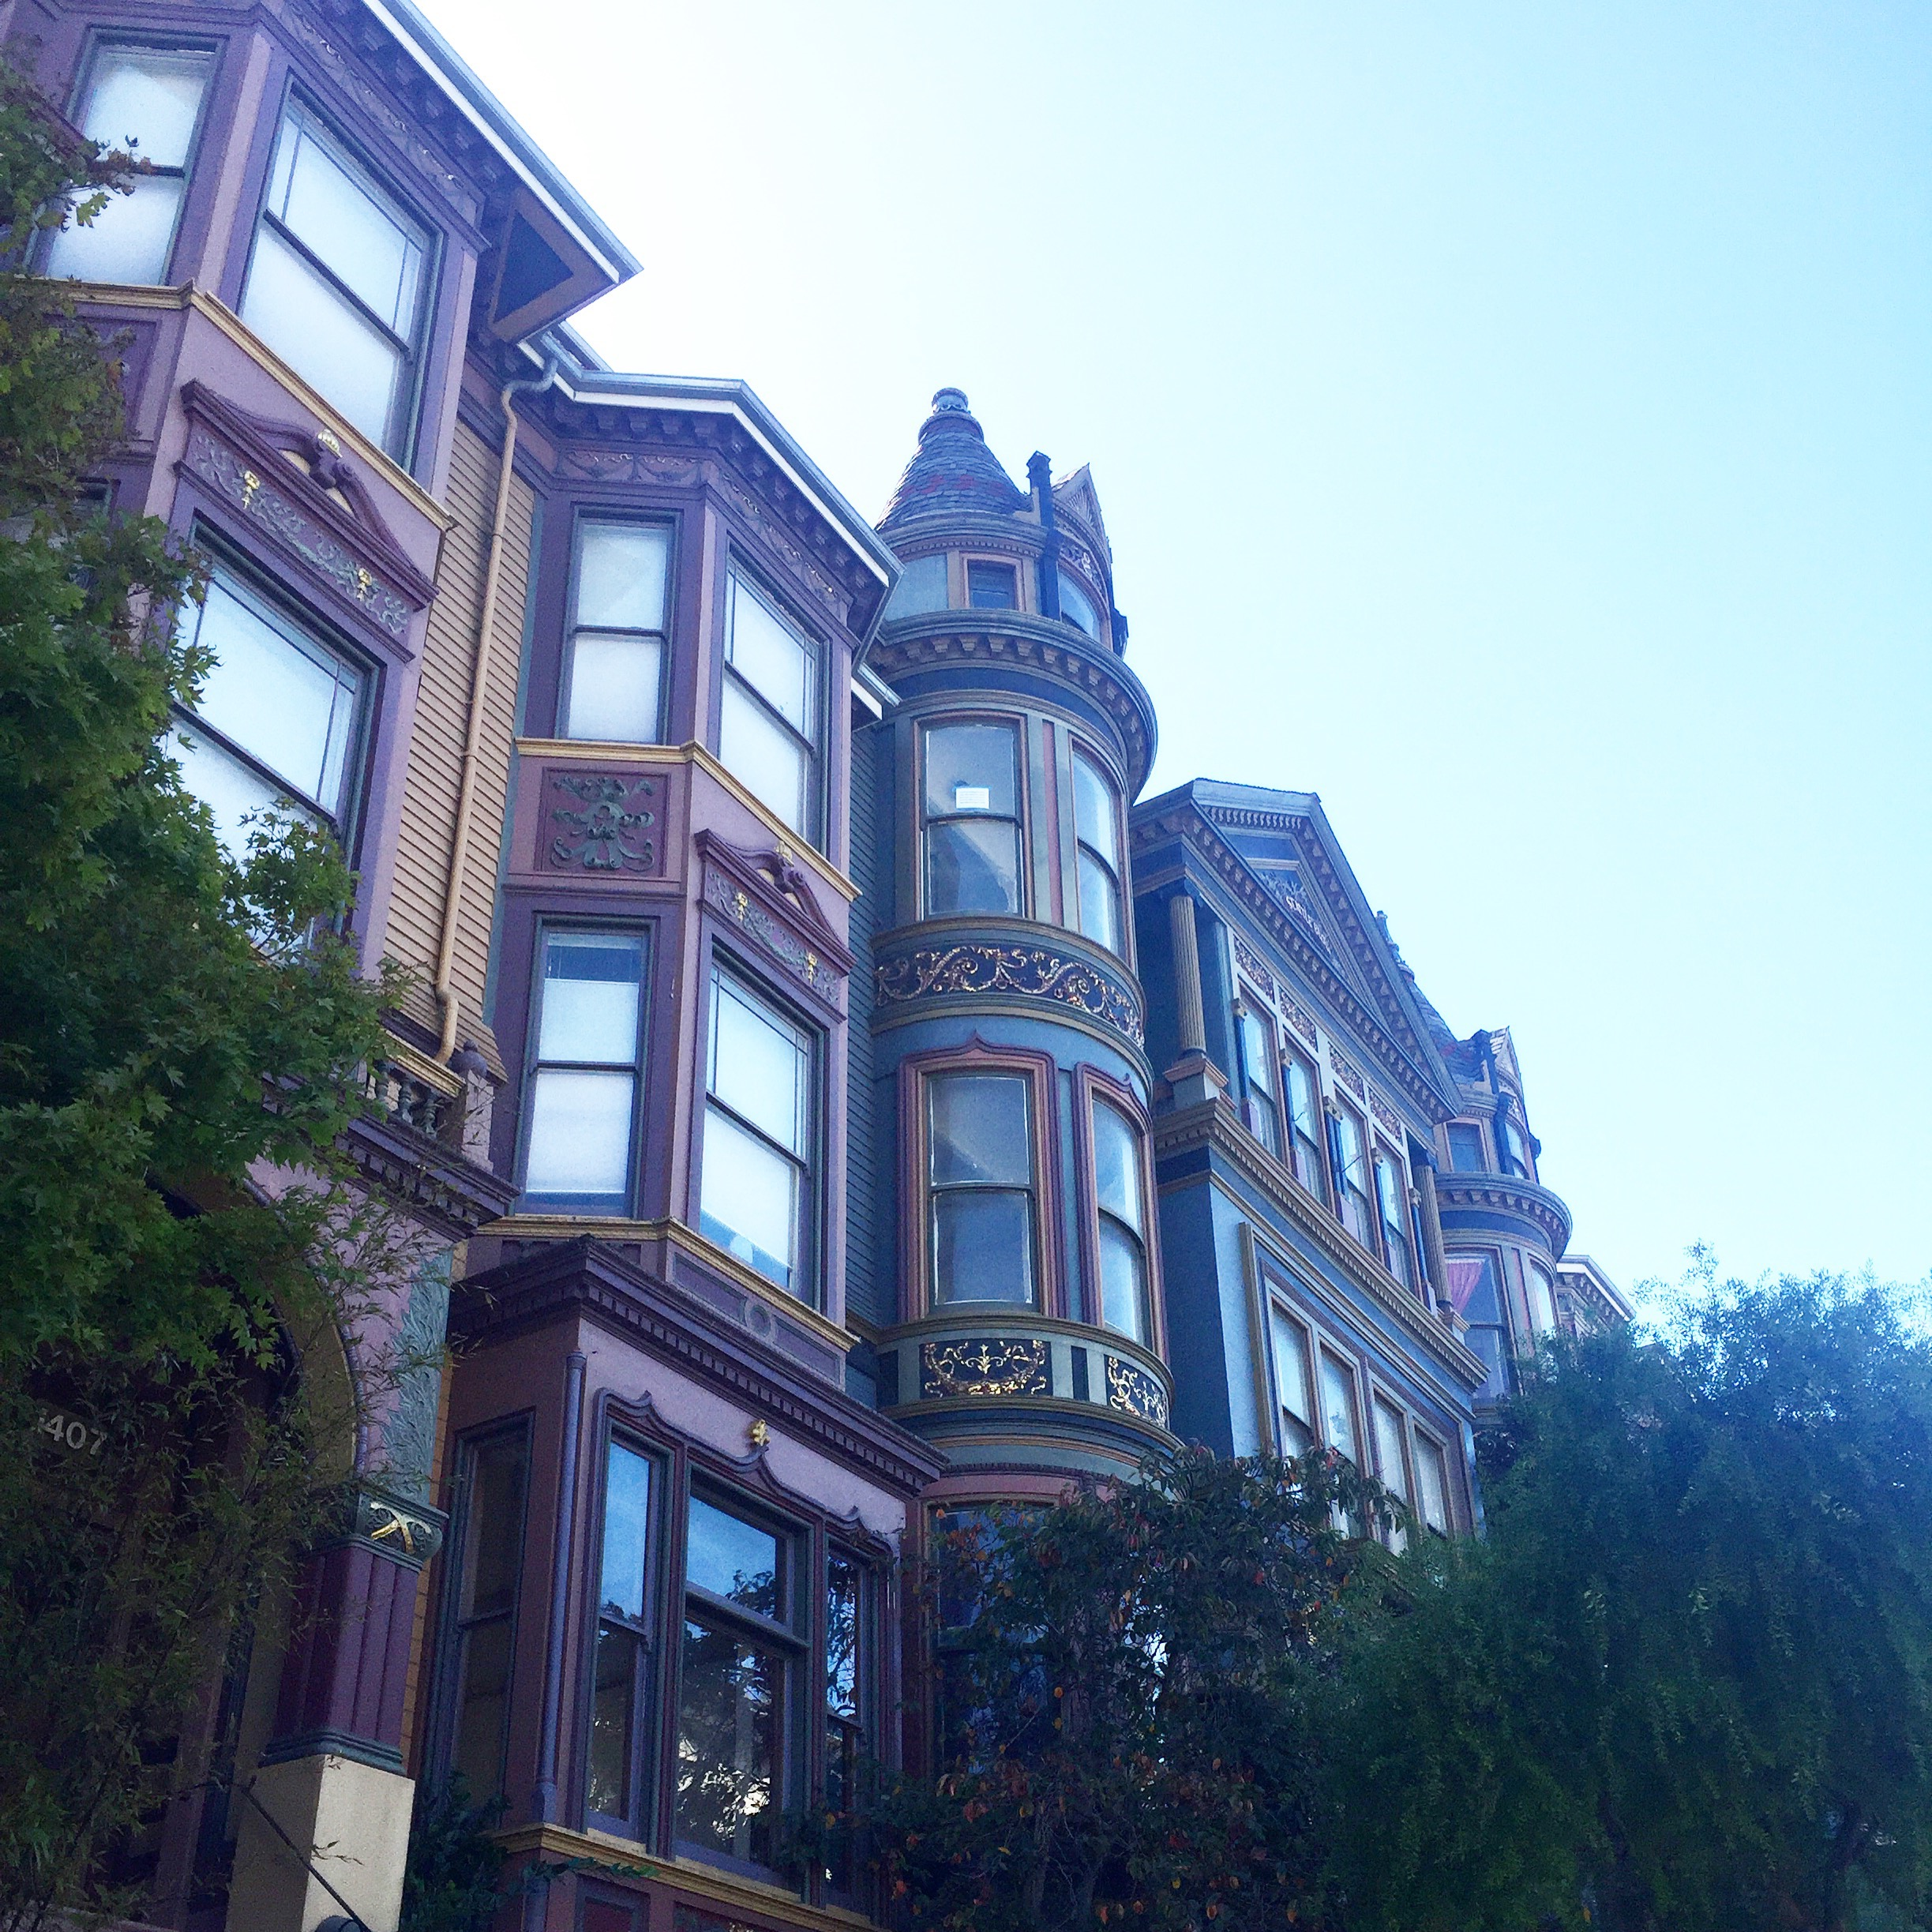 sanfrancisco,sanfranciscocity,buildings,homes,beautifulhomes,architecture